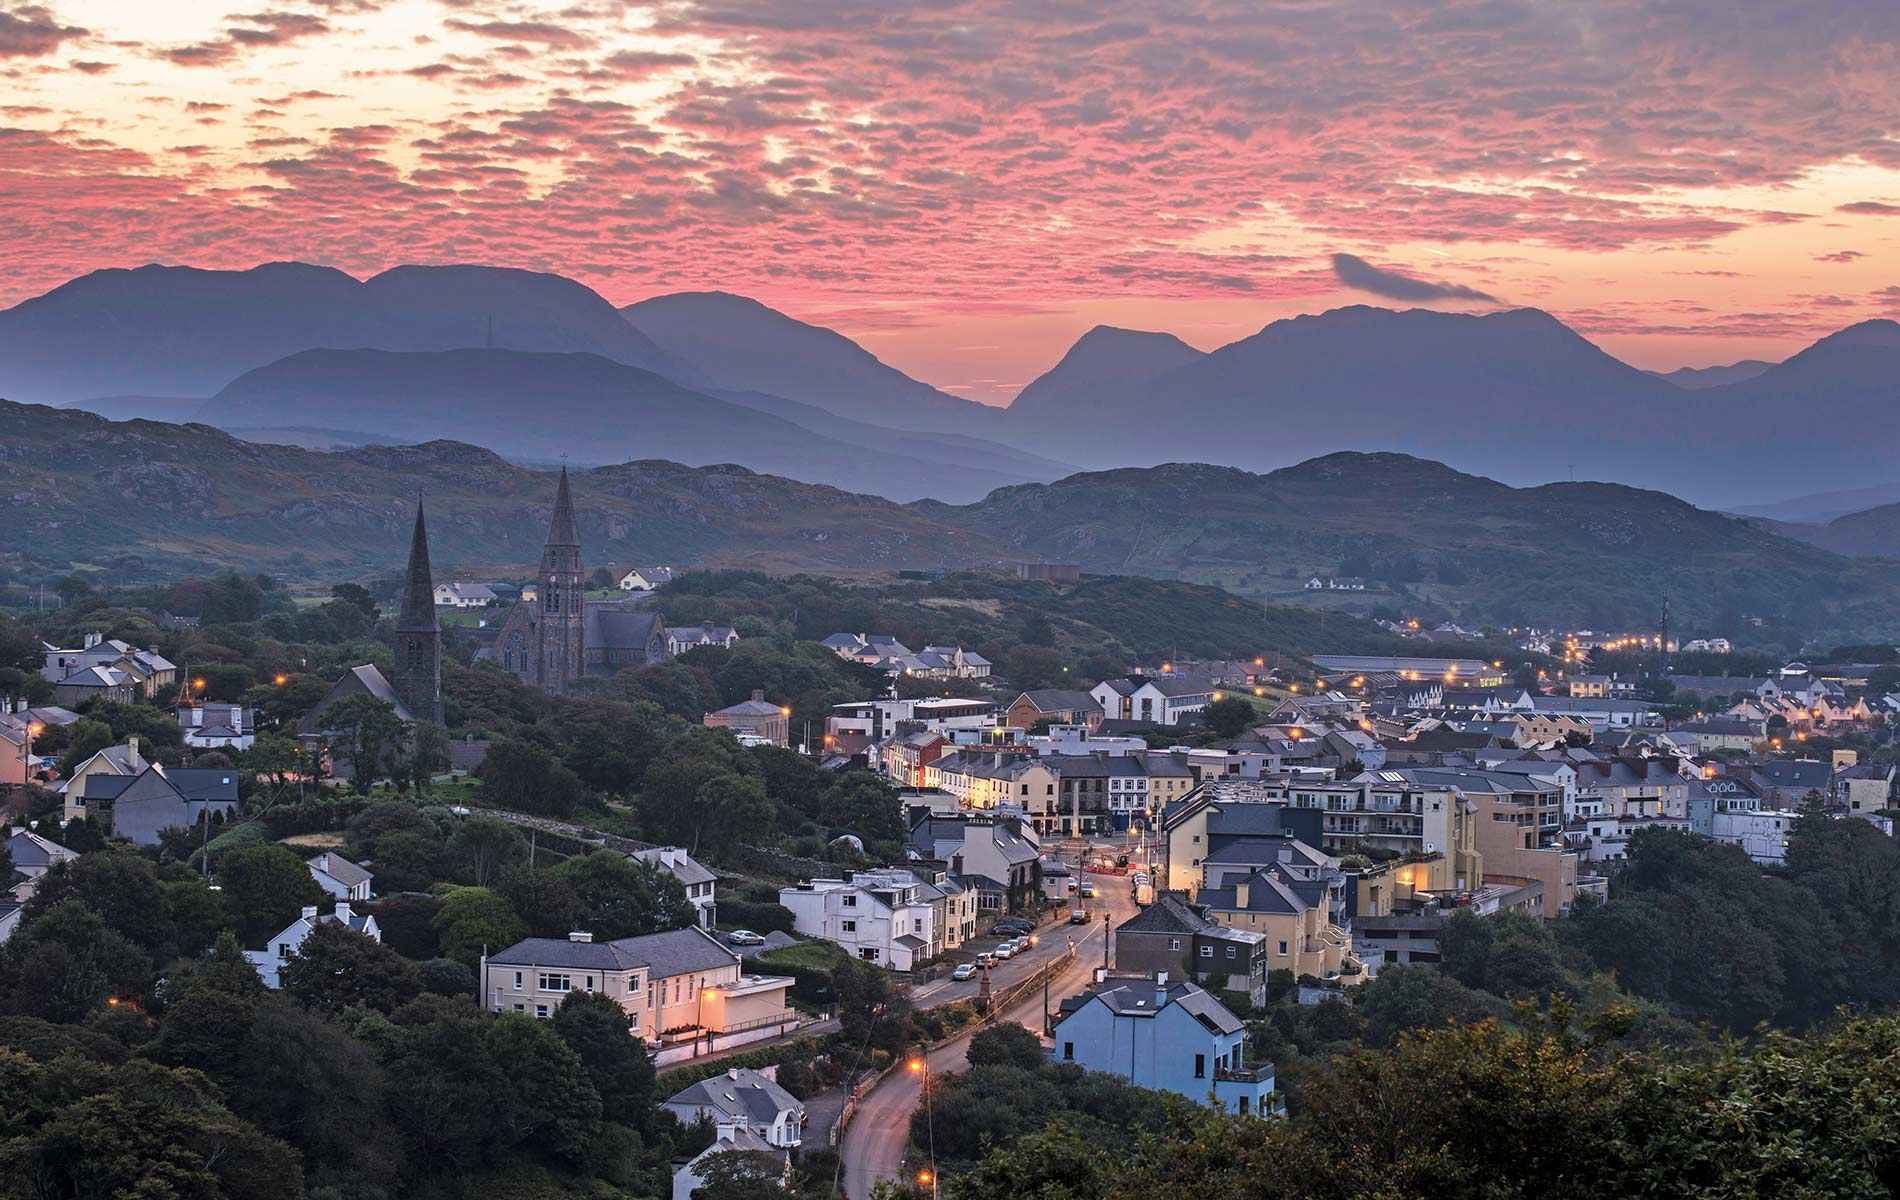 A view of the quaint town of Clifden in County Galway at sunrise, as seen from the nearby scenic Sky Road